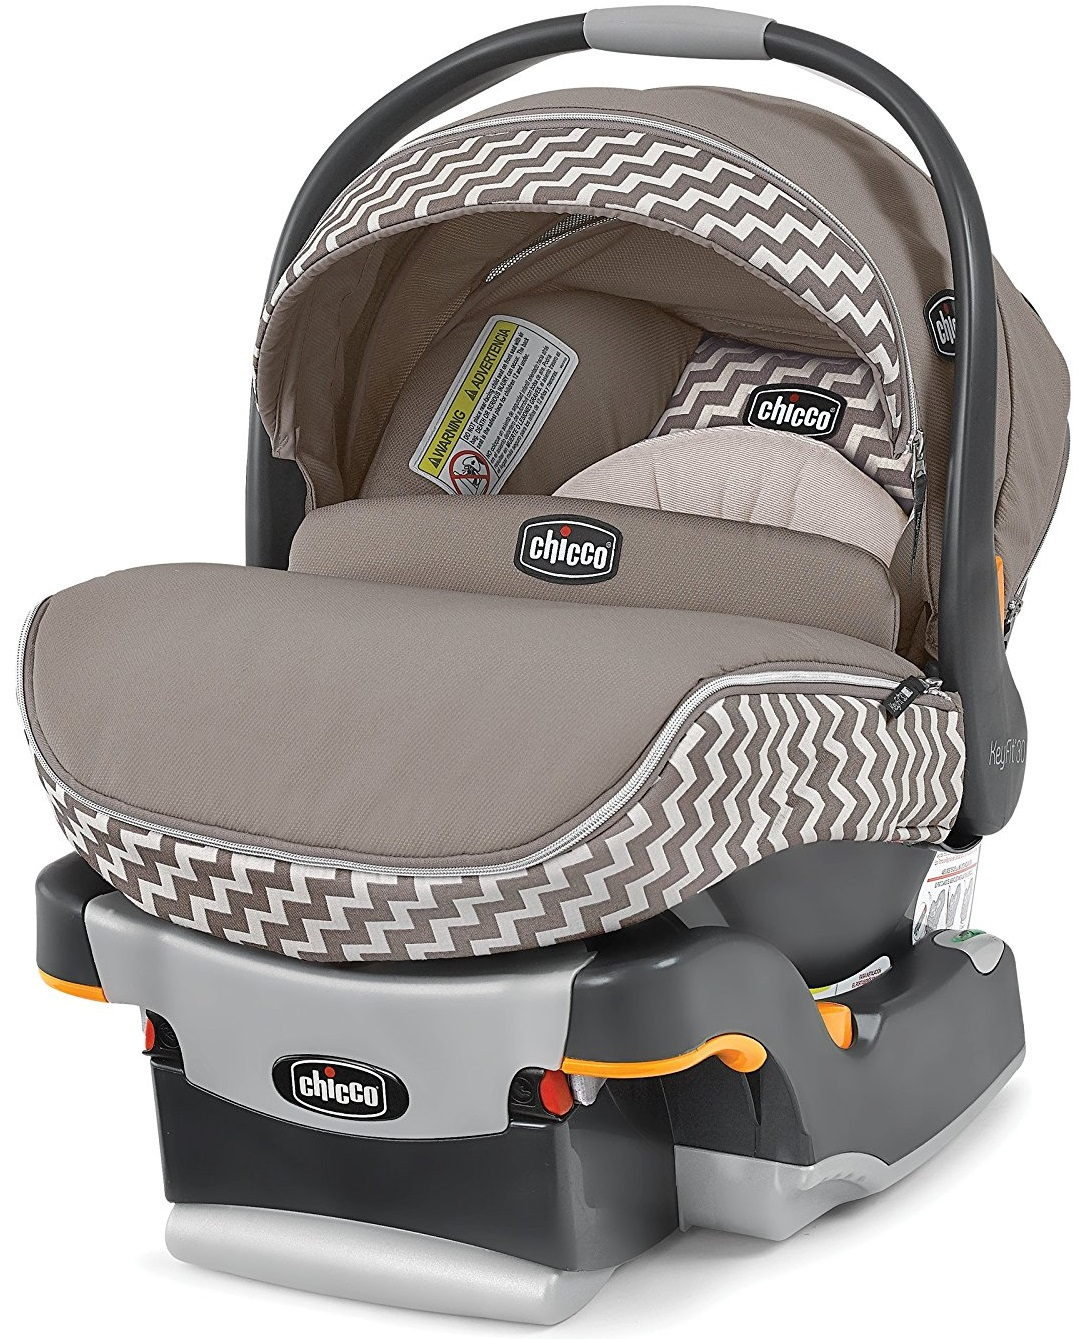 chicco keyfit 30 zip vs keyfit 30 comparison which infant car seat is more suitable for your. Black Bedroom Furniture Sets. Home Design Ideas